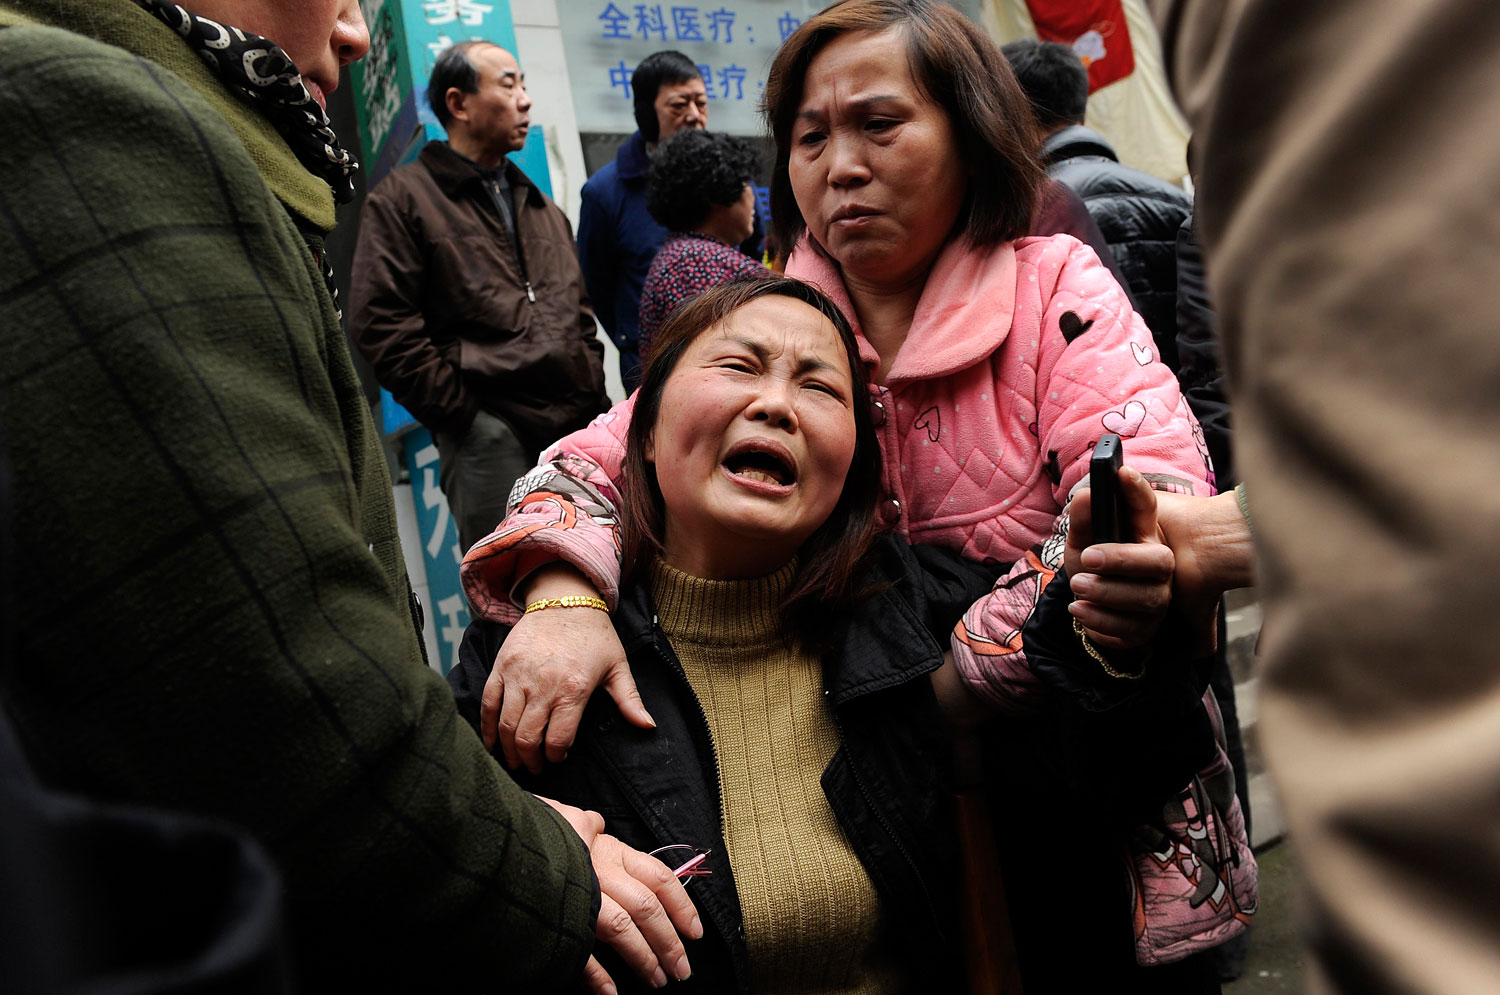 A woman cries after her parent was killed in a knifing incident in Changsha, Hunan province, China,  March 14, 2014.